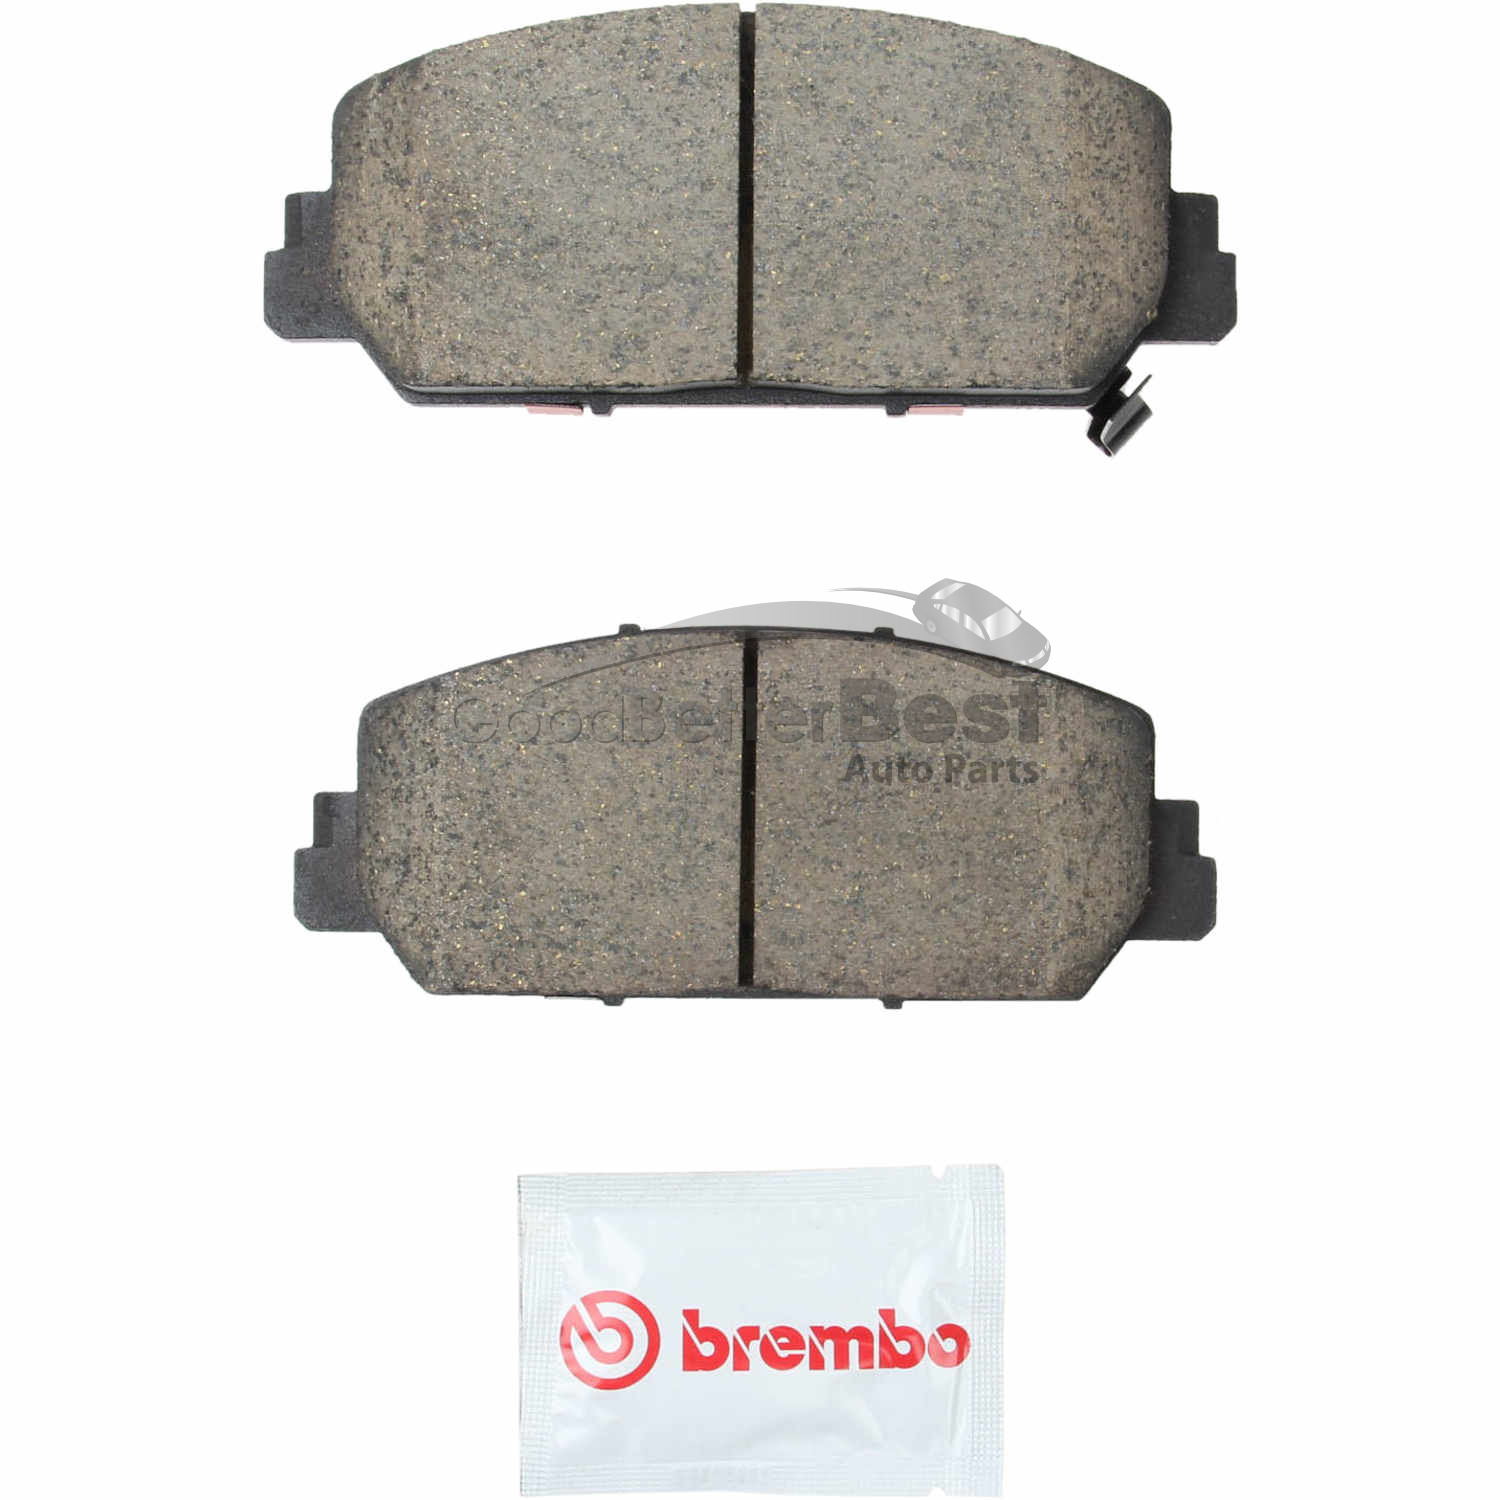 New Brembo Disc Brake Pad Set Front P28084N Acura Honda